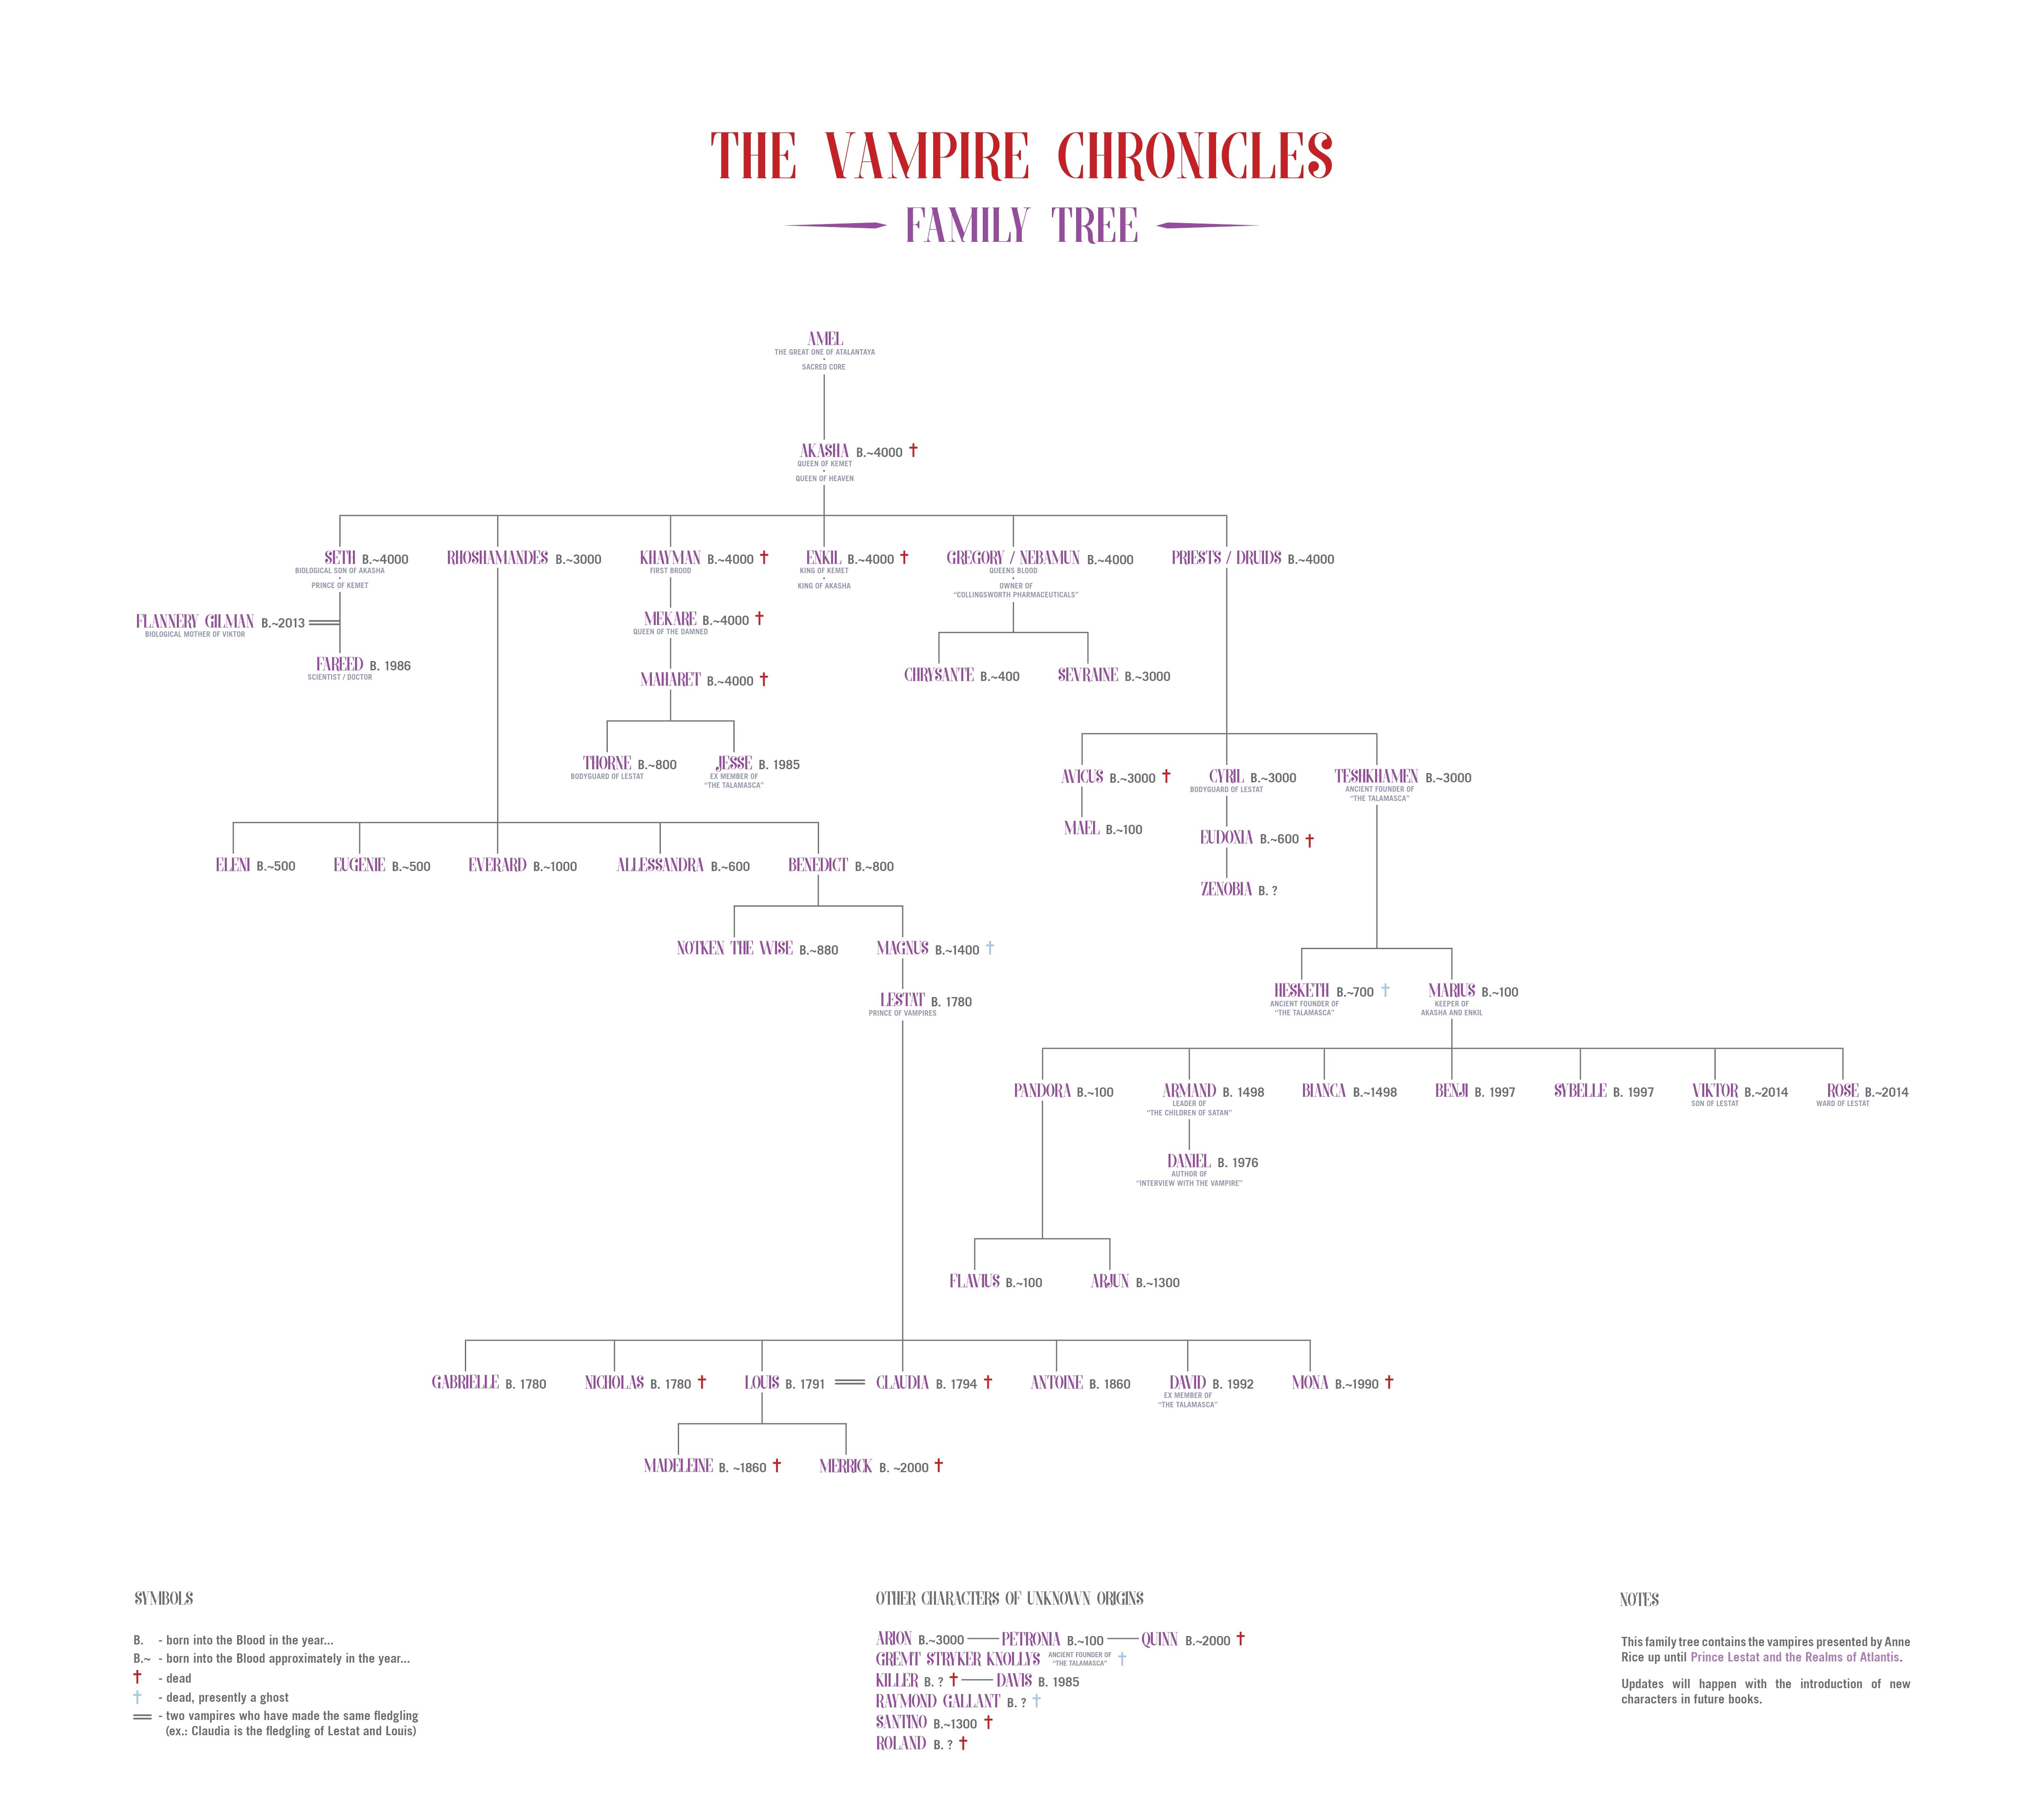 https://www.deviantart.com/funeral16/art/The-Vampire-Chronicles-Family-Tree-661123475